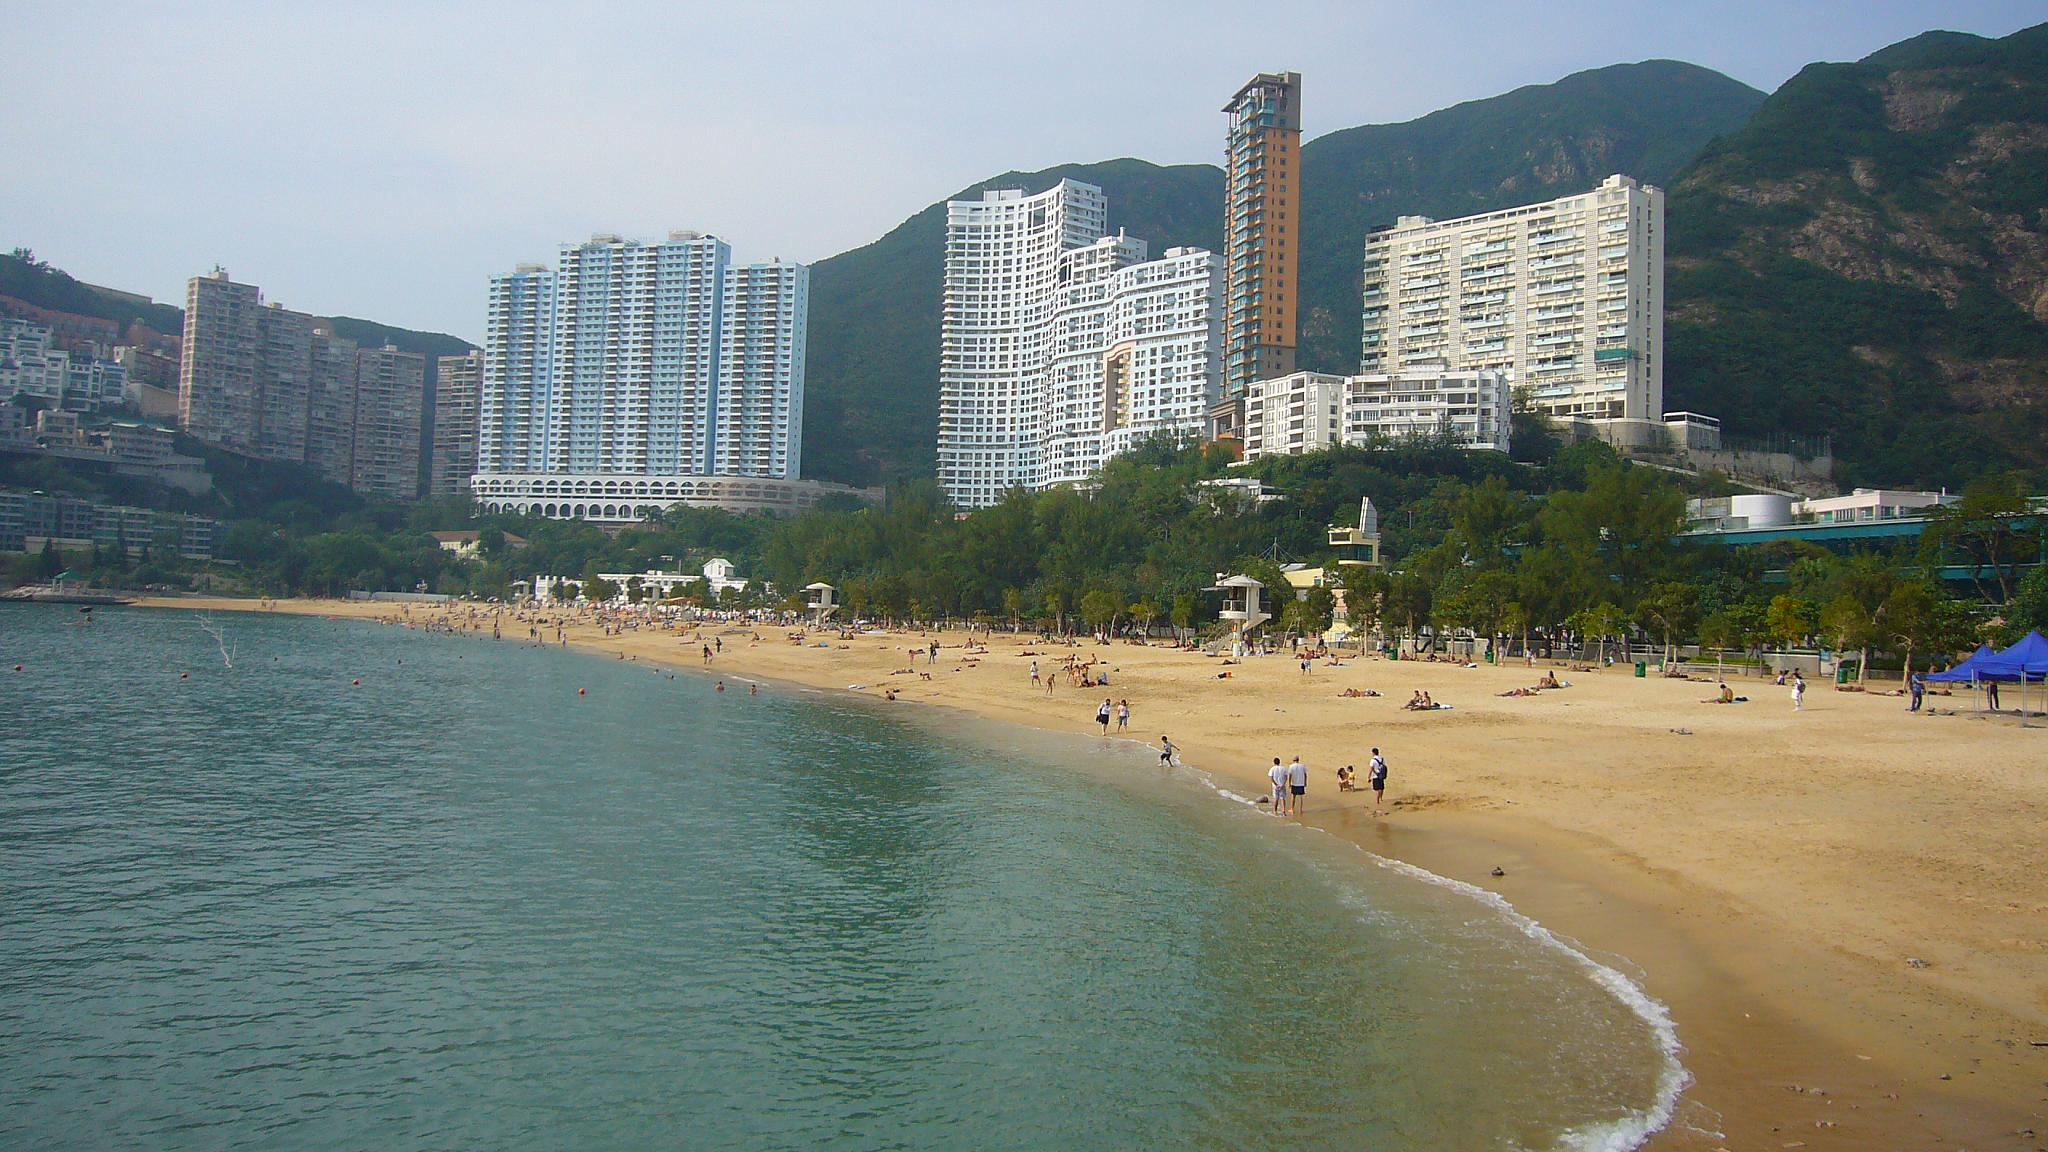 Repulse+Bay on The Repulse Bay Hong Kong